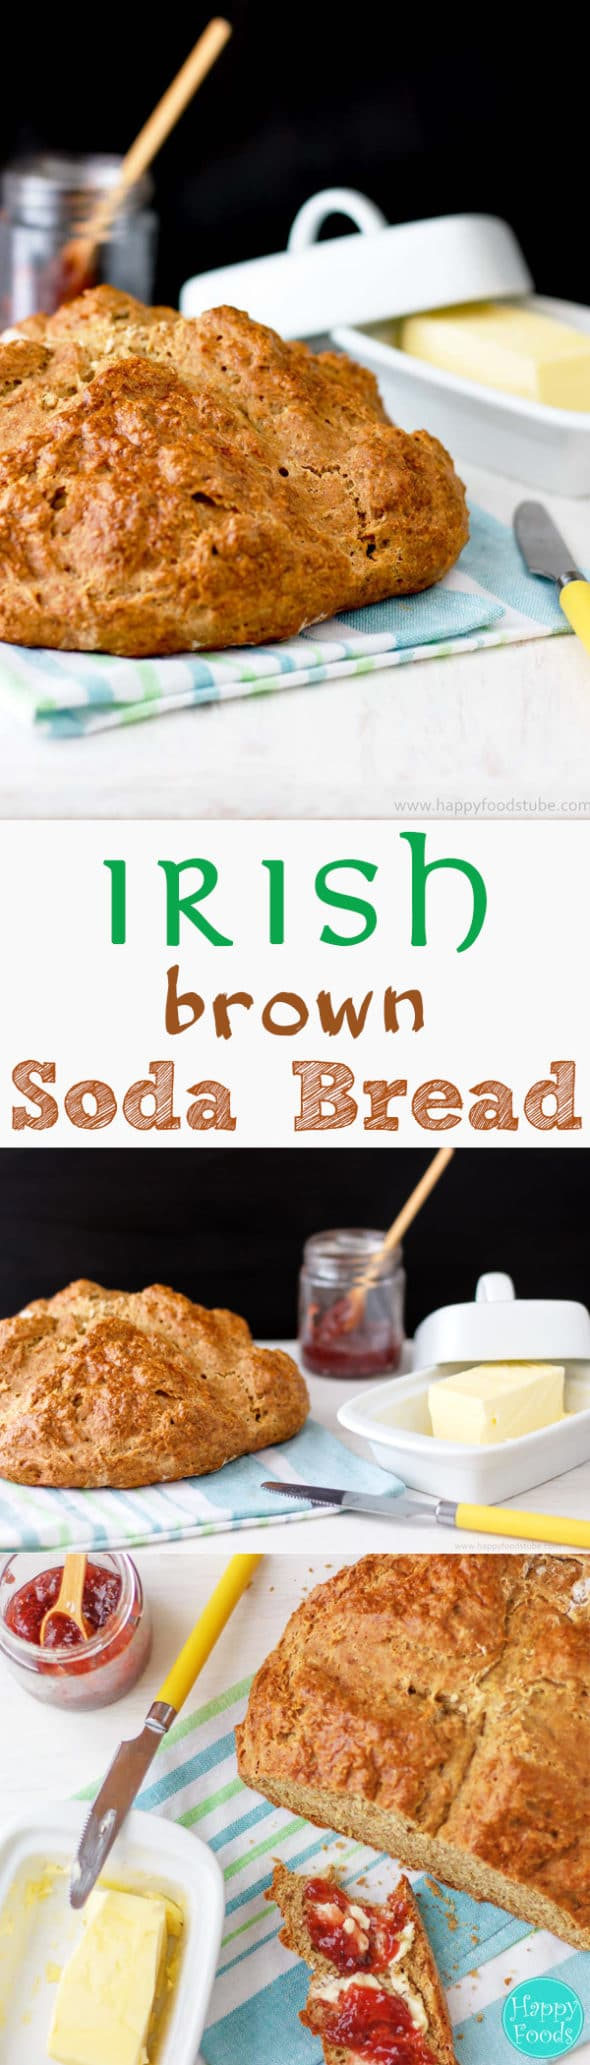 Irish Brown Soda Bread is the traditional Irish bread recipe. Flour, baking soda and salt are mixed with buttermilk and formed into a loaf. Yeast-free dough, 5-minute preparation & no kneading skills required make it a perfect bread for beginner bakers or busy families. #irish #sodabread #brownbread #bread #recipe #traditional #baking #makingbread #fromscratch #howtomake